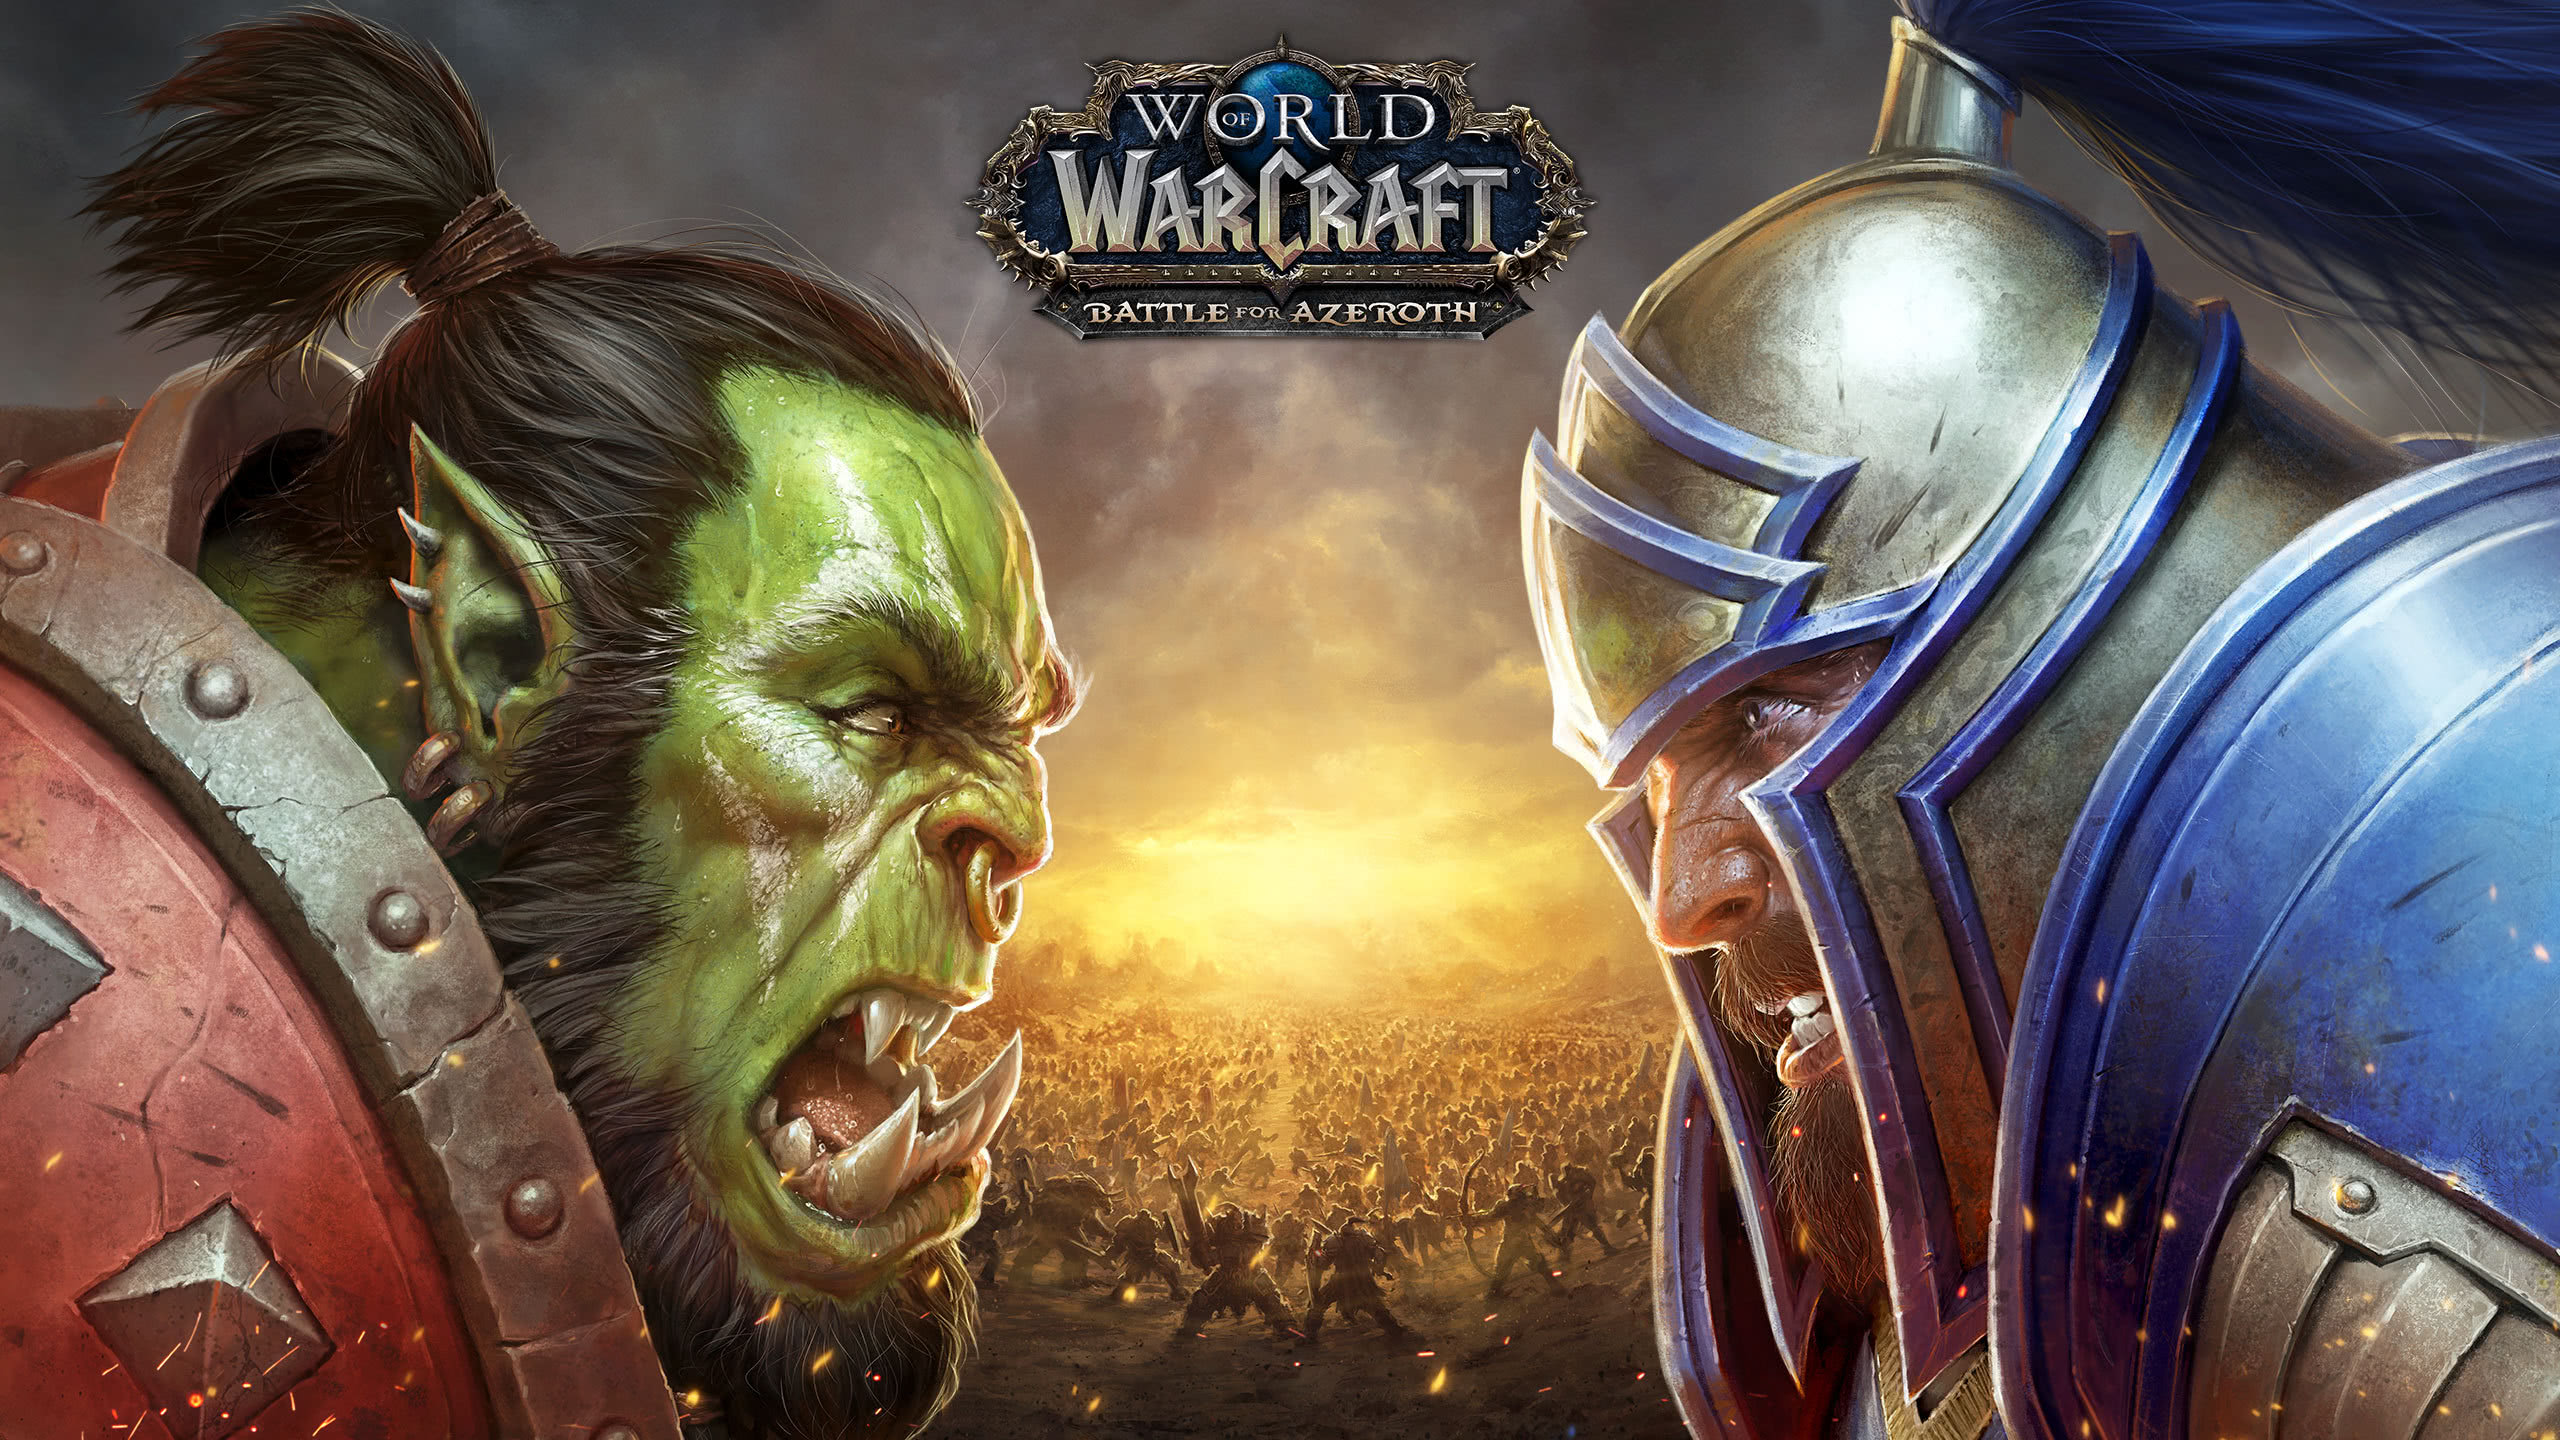 world of warcraft battle for azeroth wqhd 1440p wallpaper